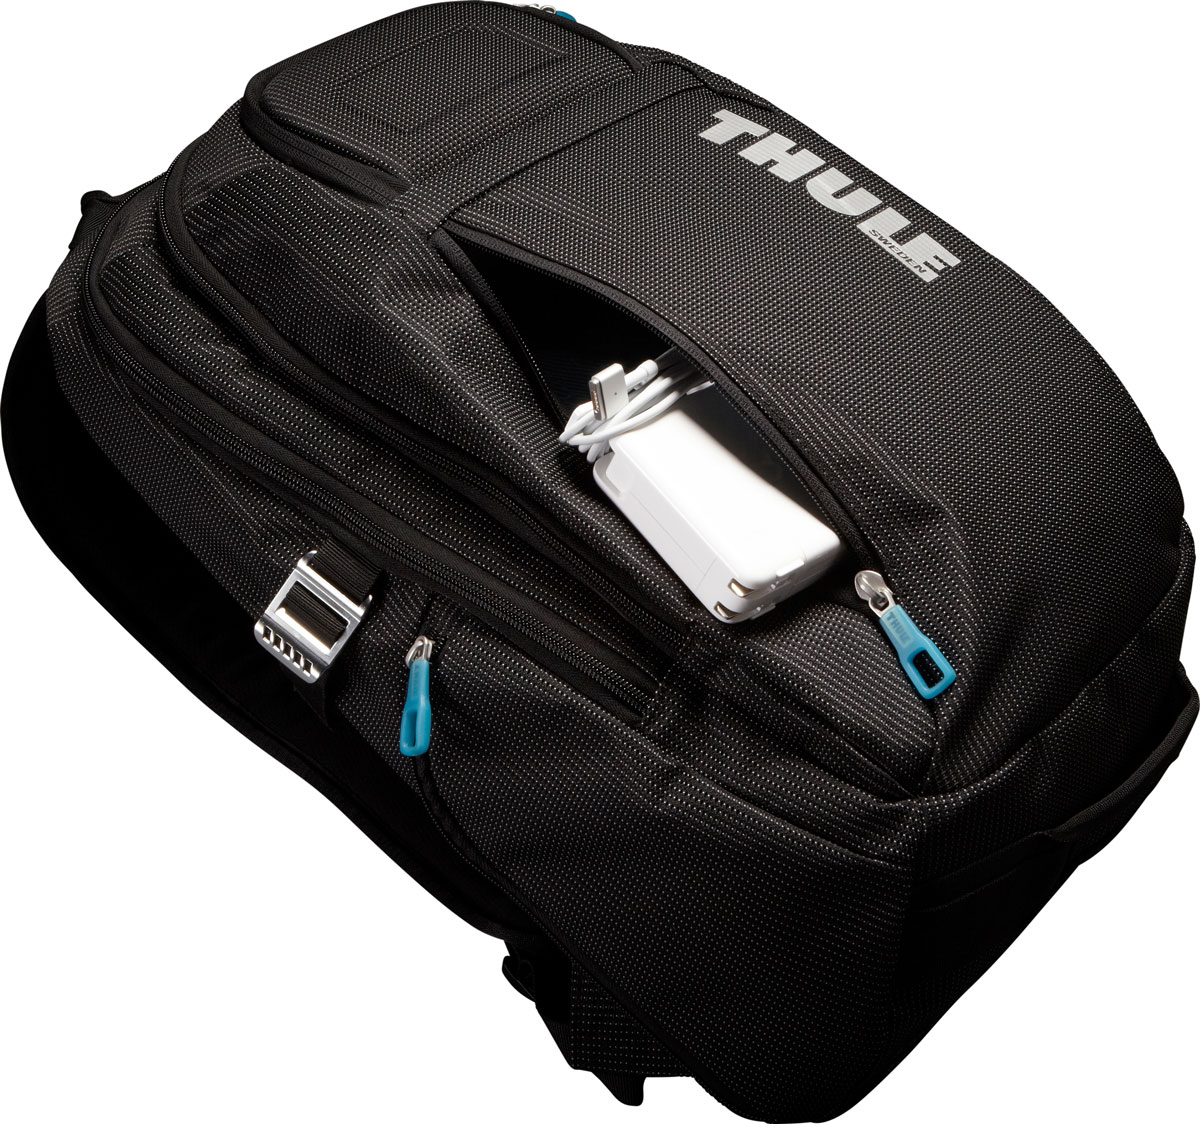 Рюкзак Thule Crossover 21 Black - Фото 5 большая